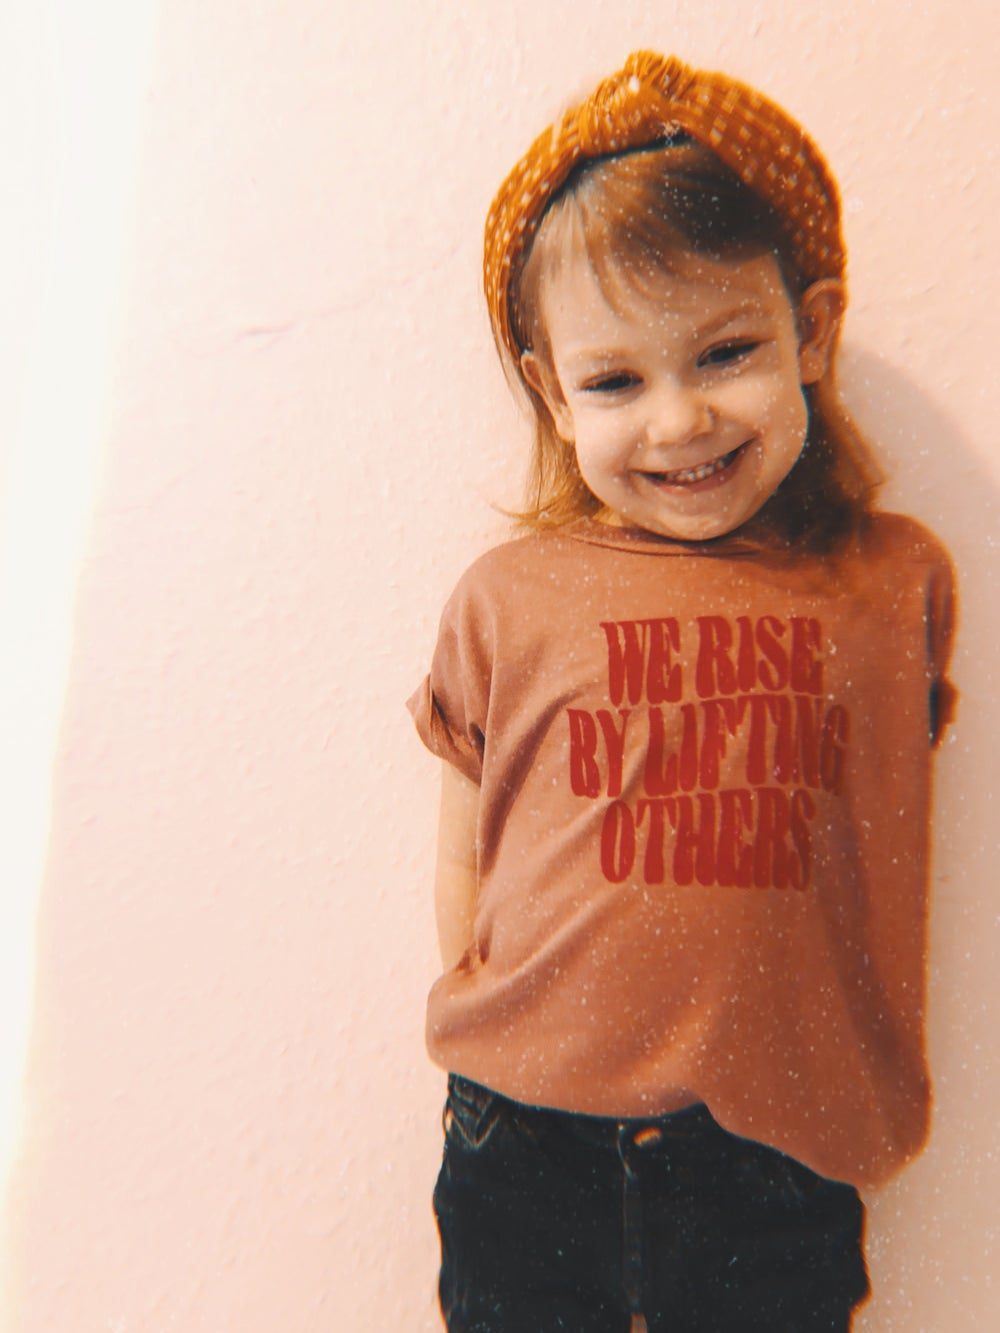 Image of We rise by lifting others kids tee